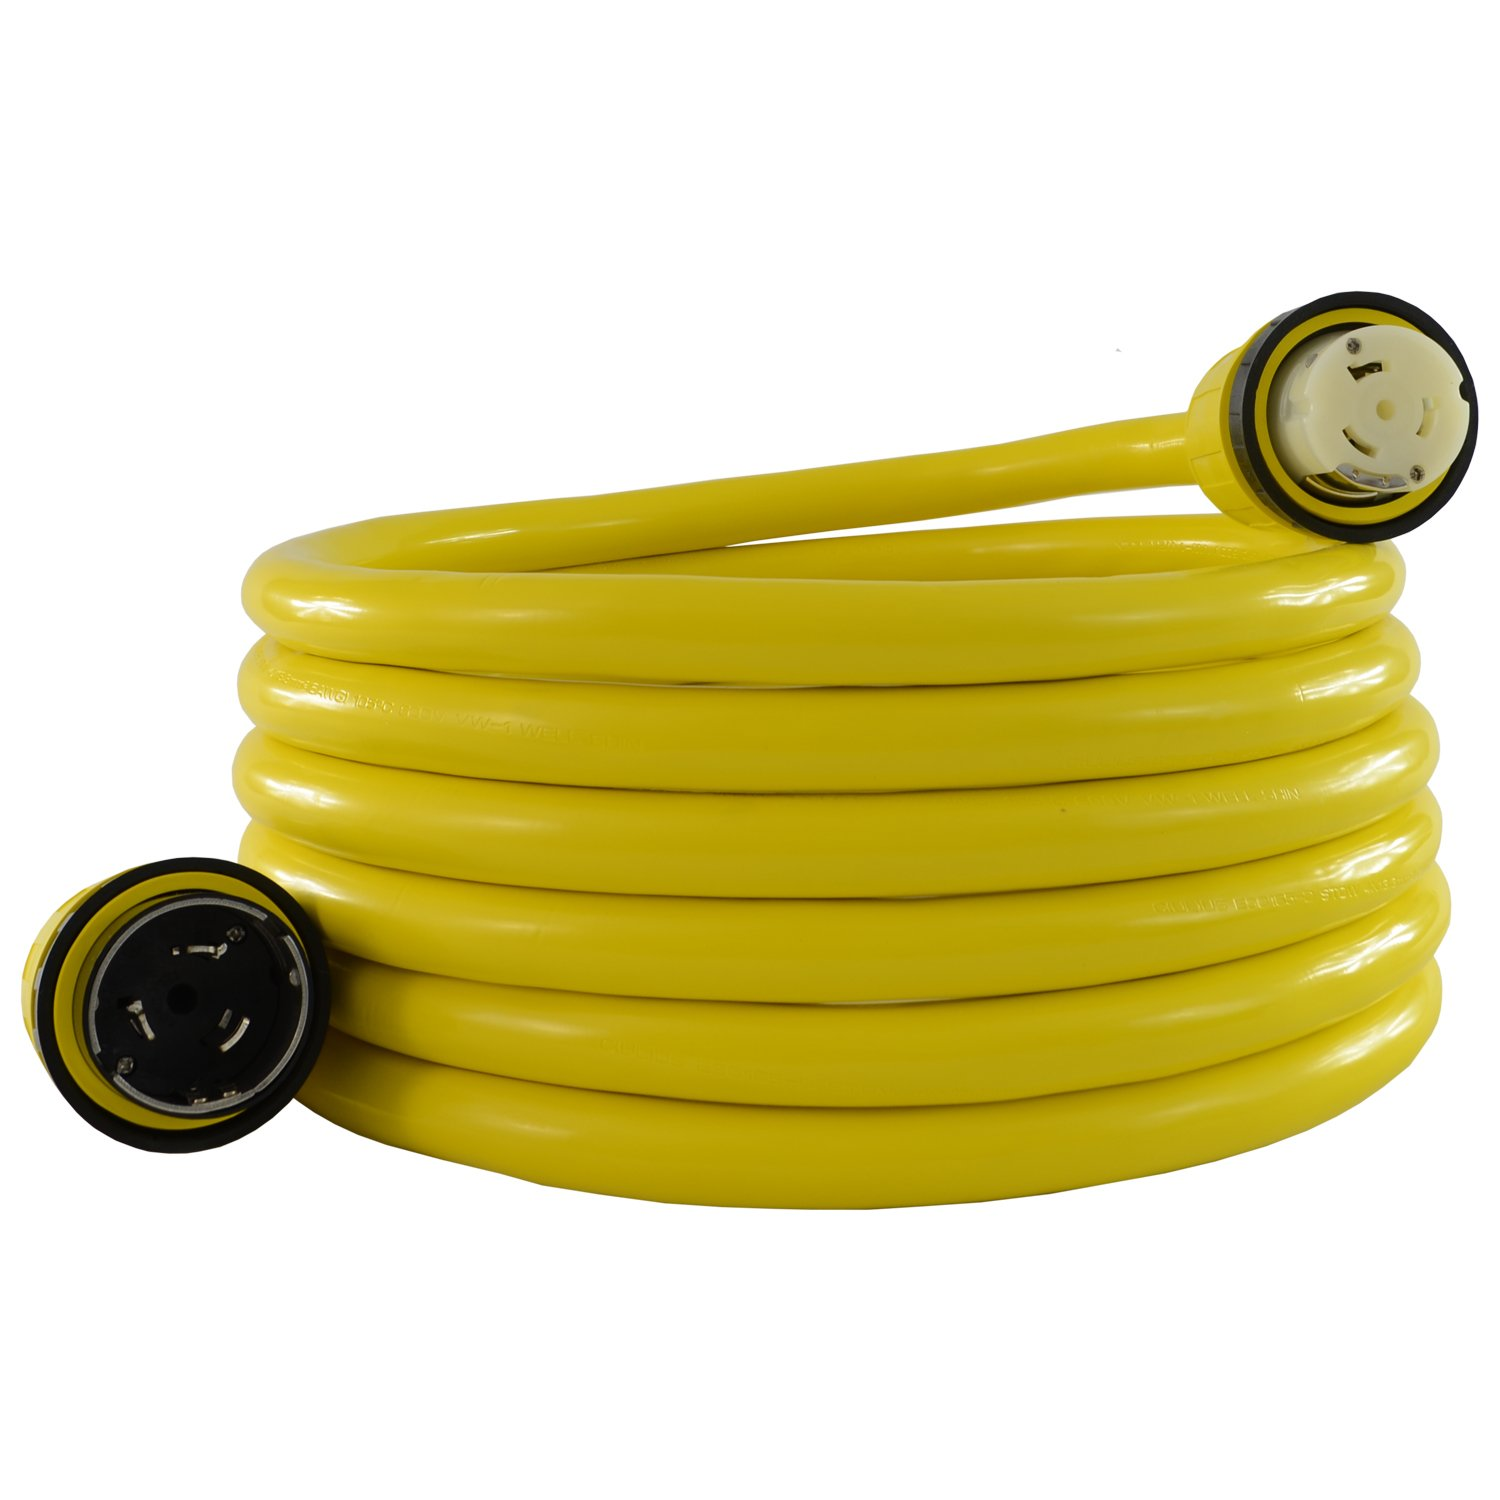 Conntek 17306: 50 Amp 125/250-Volt Marine Shore Power 4 Wire Extension Cord with Threaded Ring (25 FT)